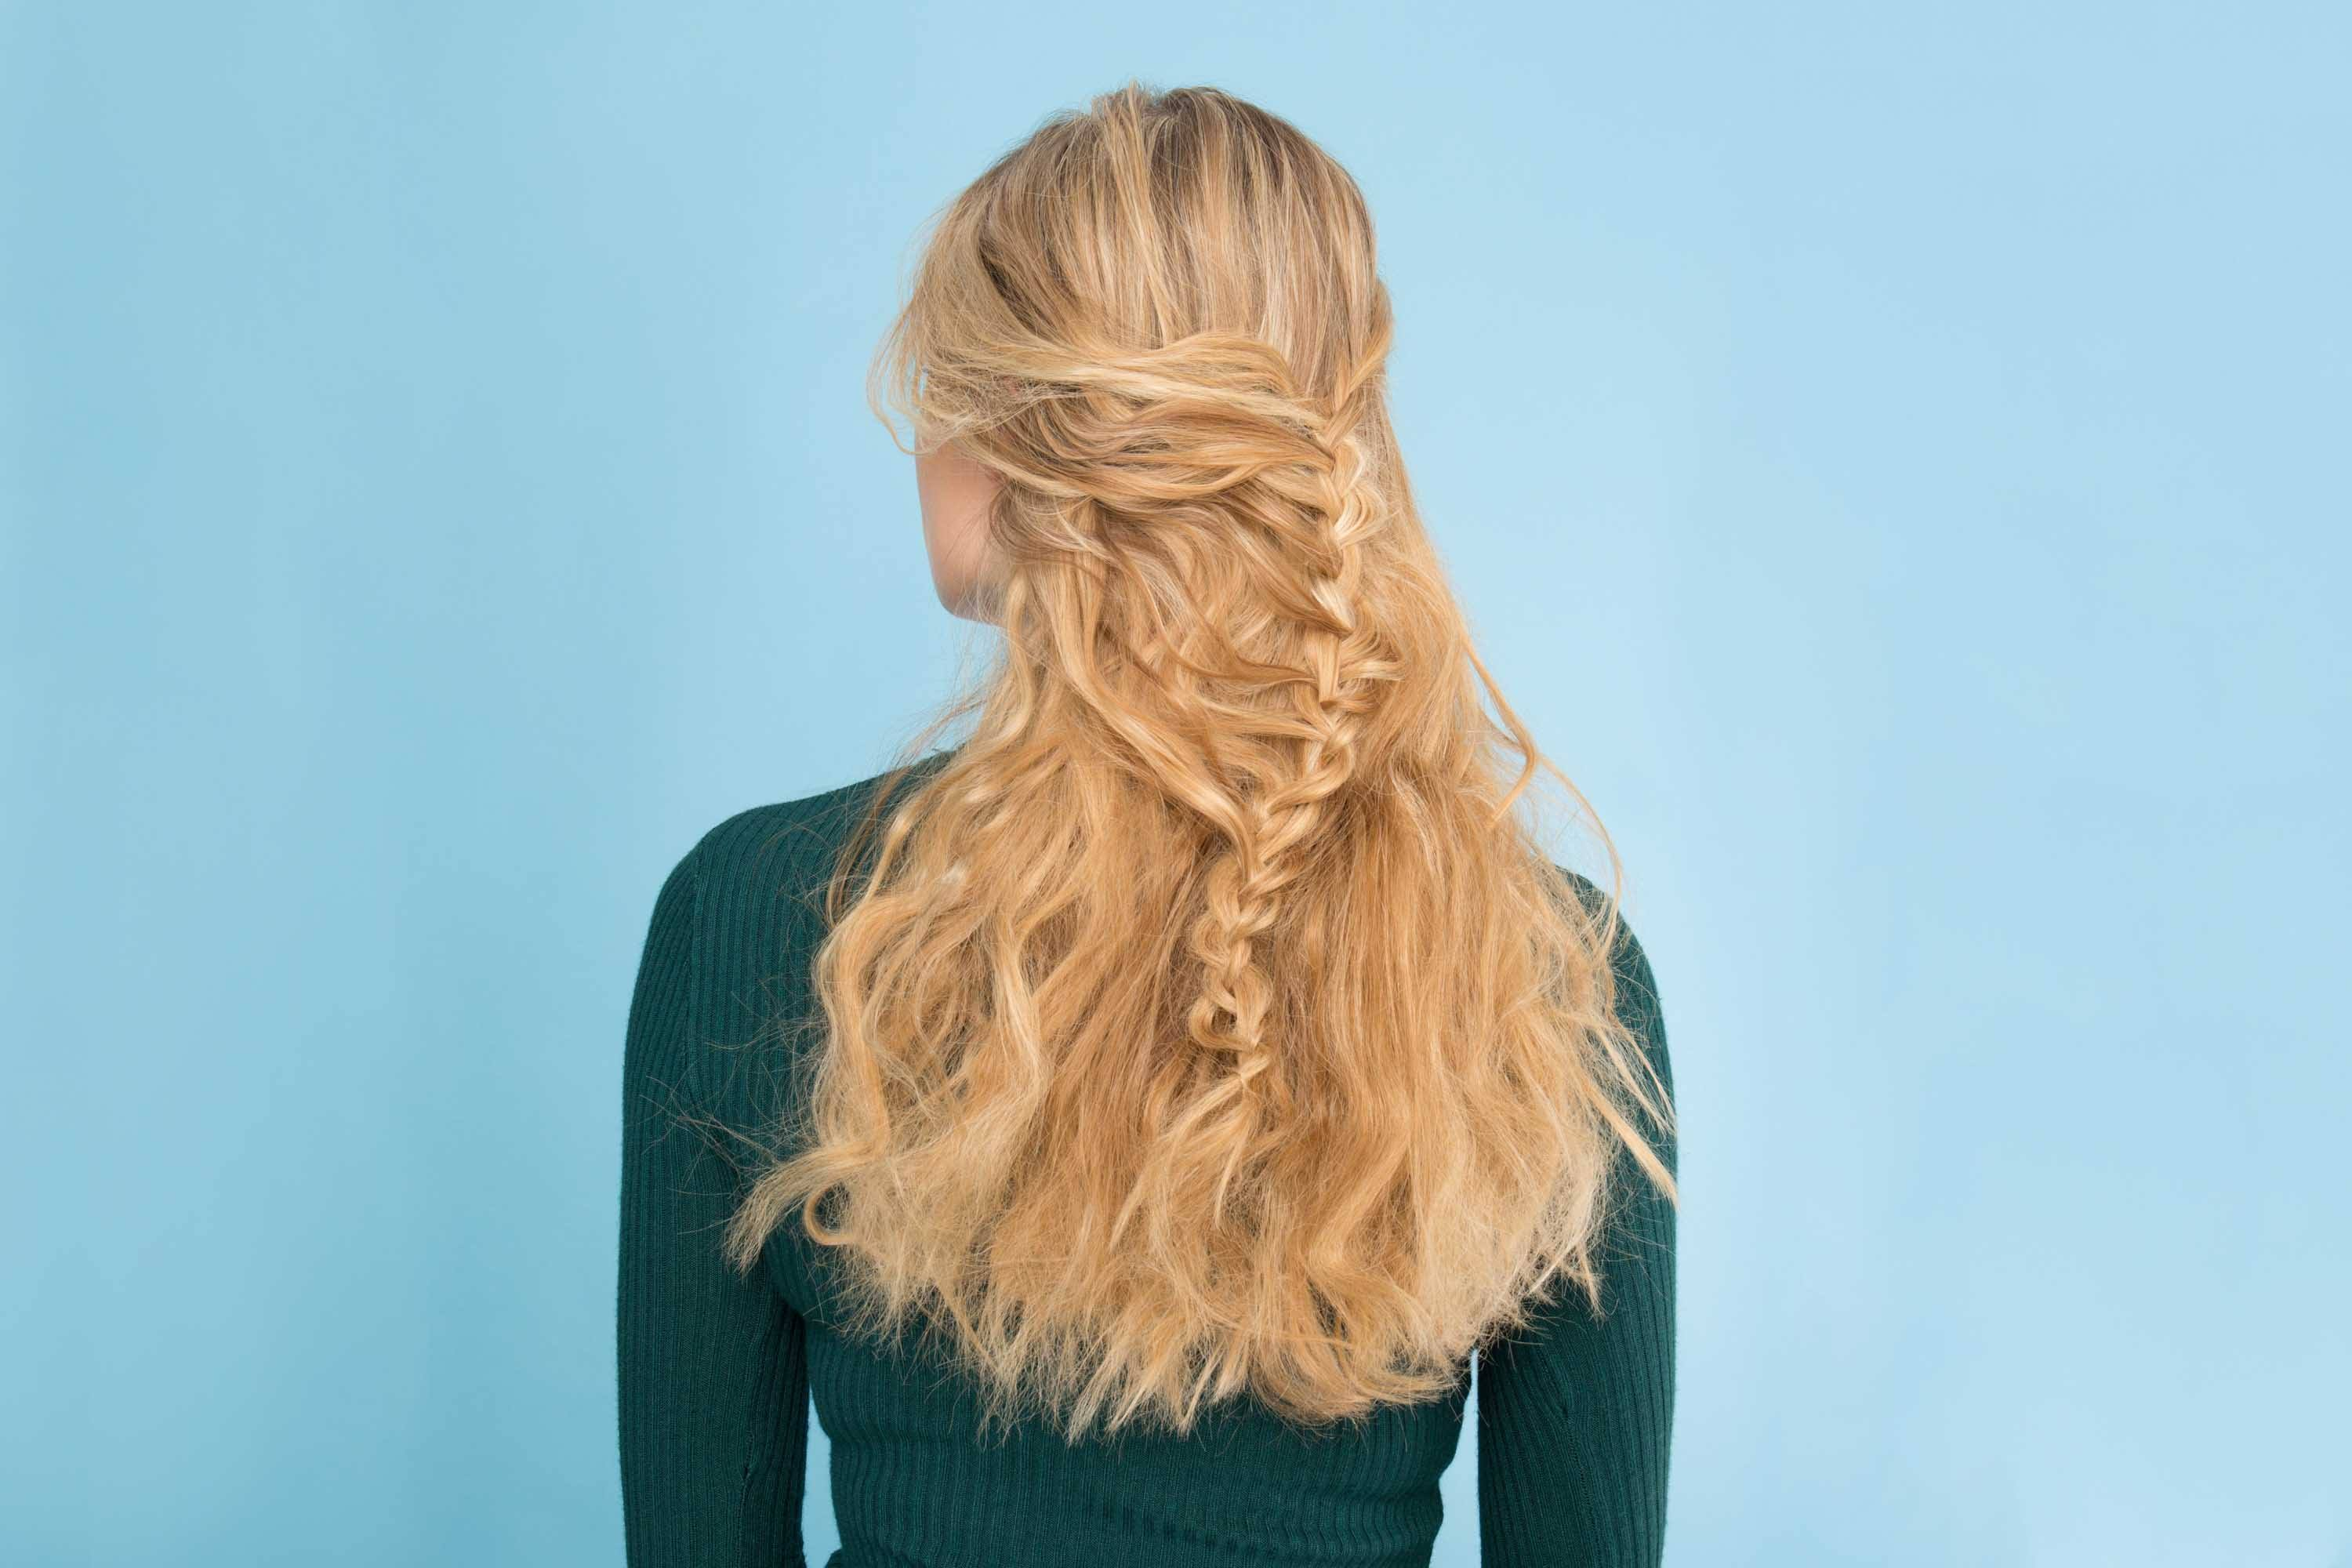 woman wearing funky braid hairstyles on long wavy blonde hair